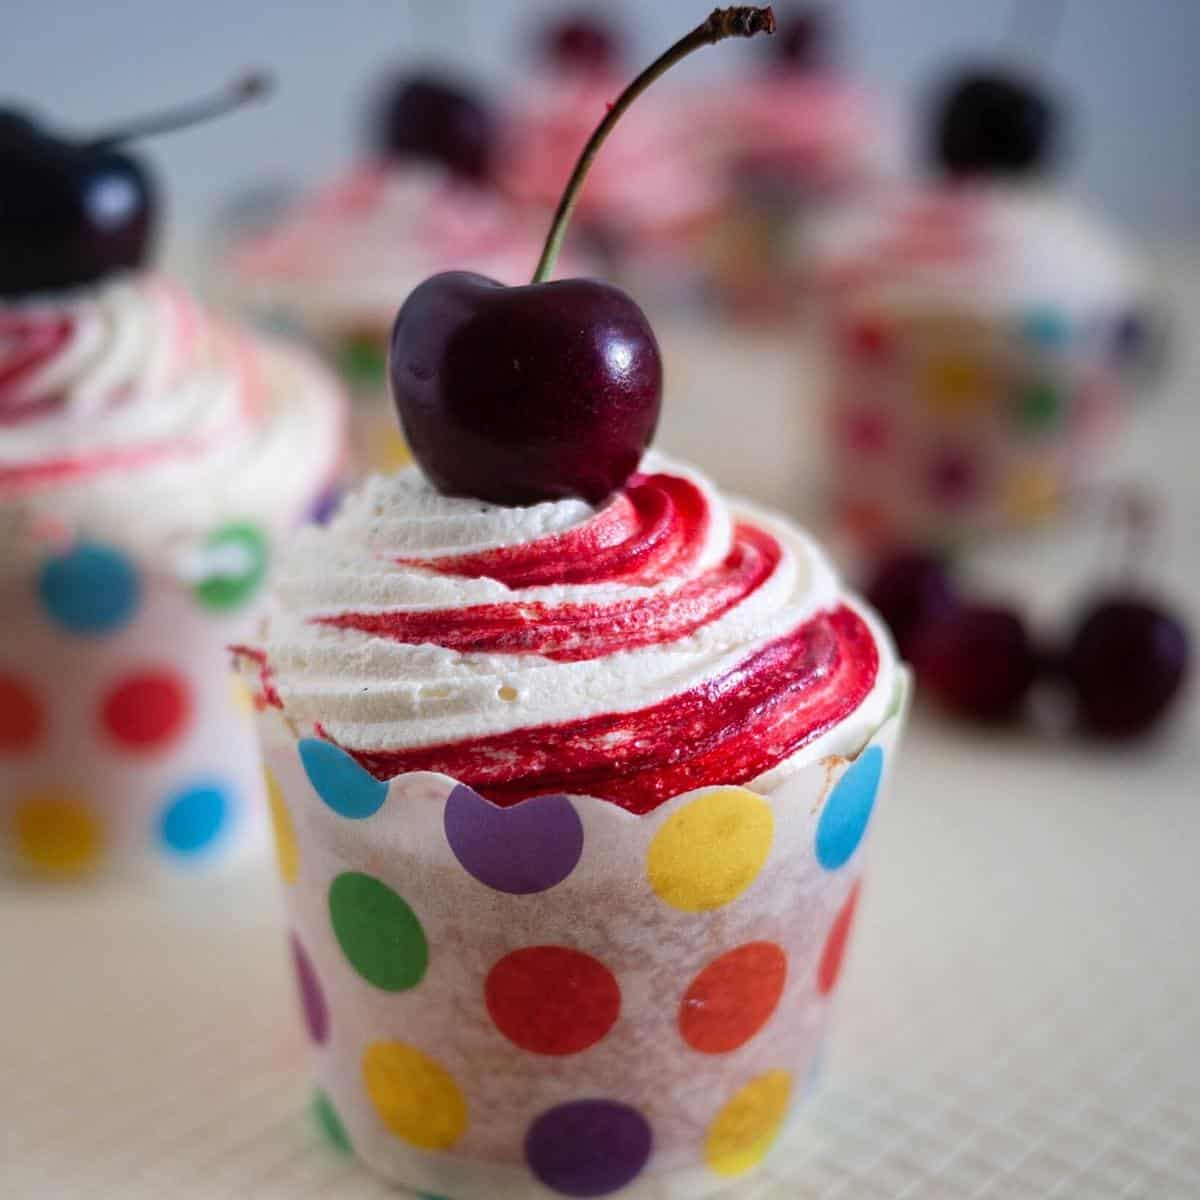 A frosted cupcake with fresh cherry.